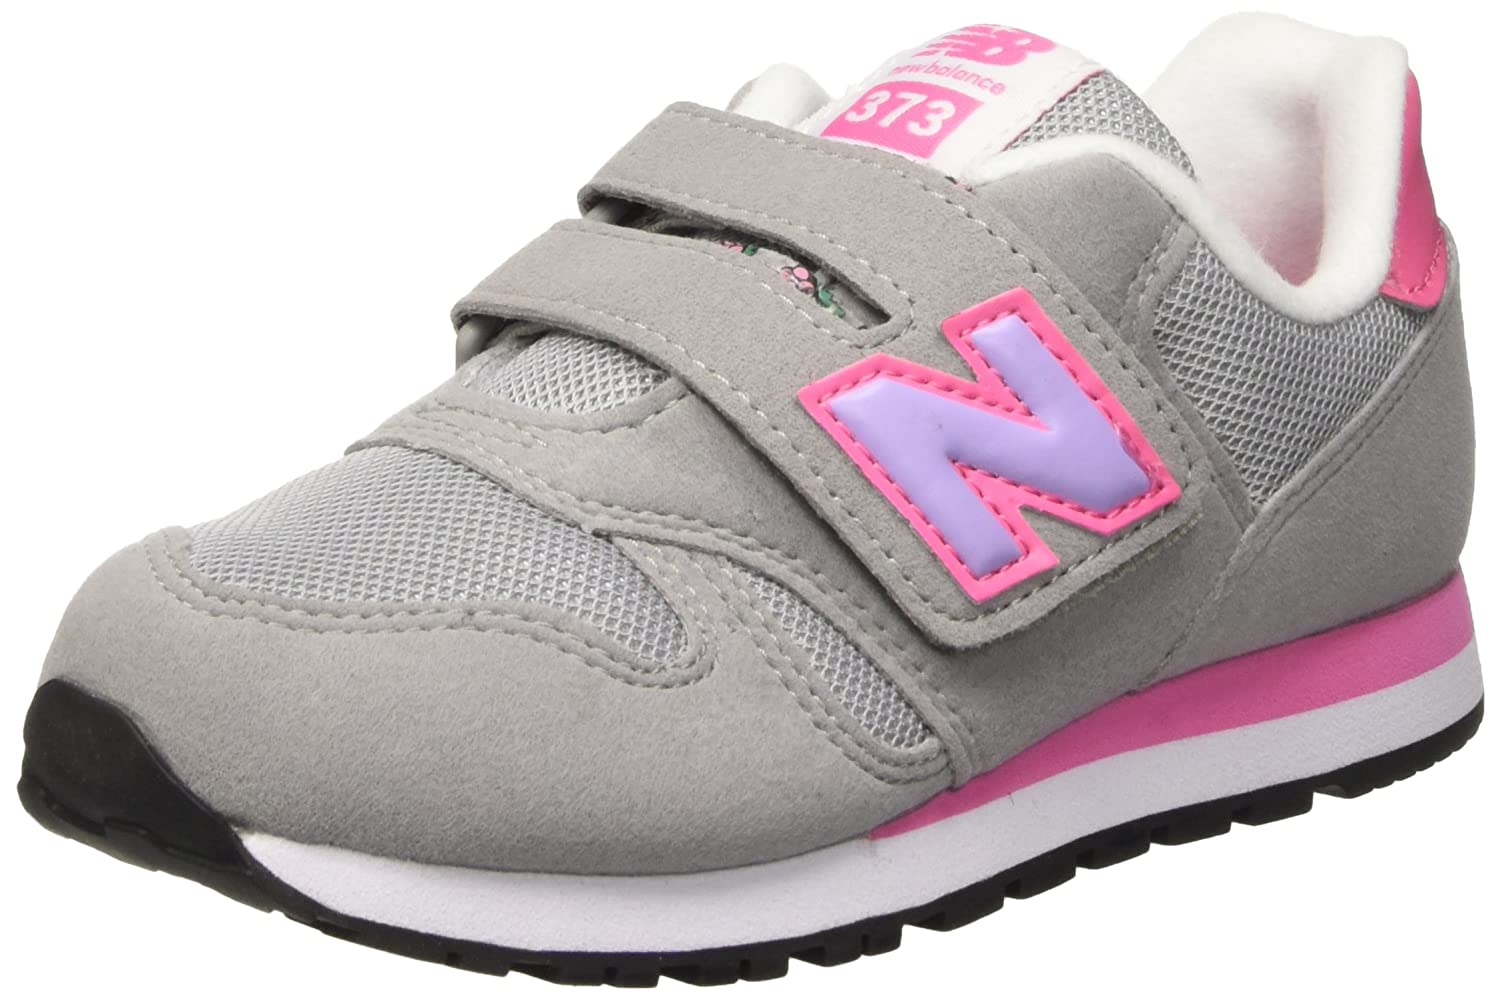 New Balance Nbkv373flp, Gymnastique Mixte Adulte Jaune (Grey Pink) Taille 34 1/2